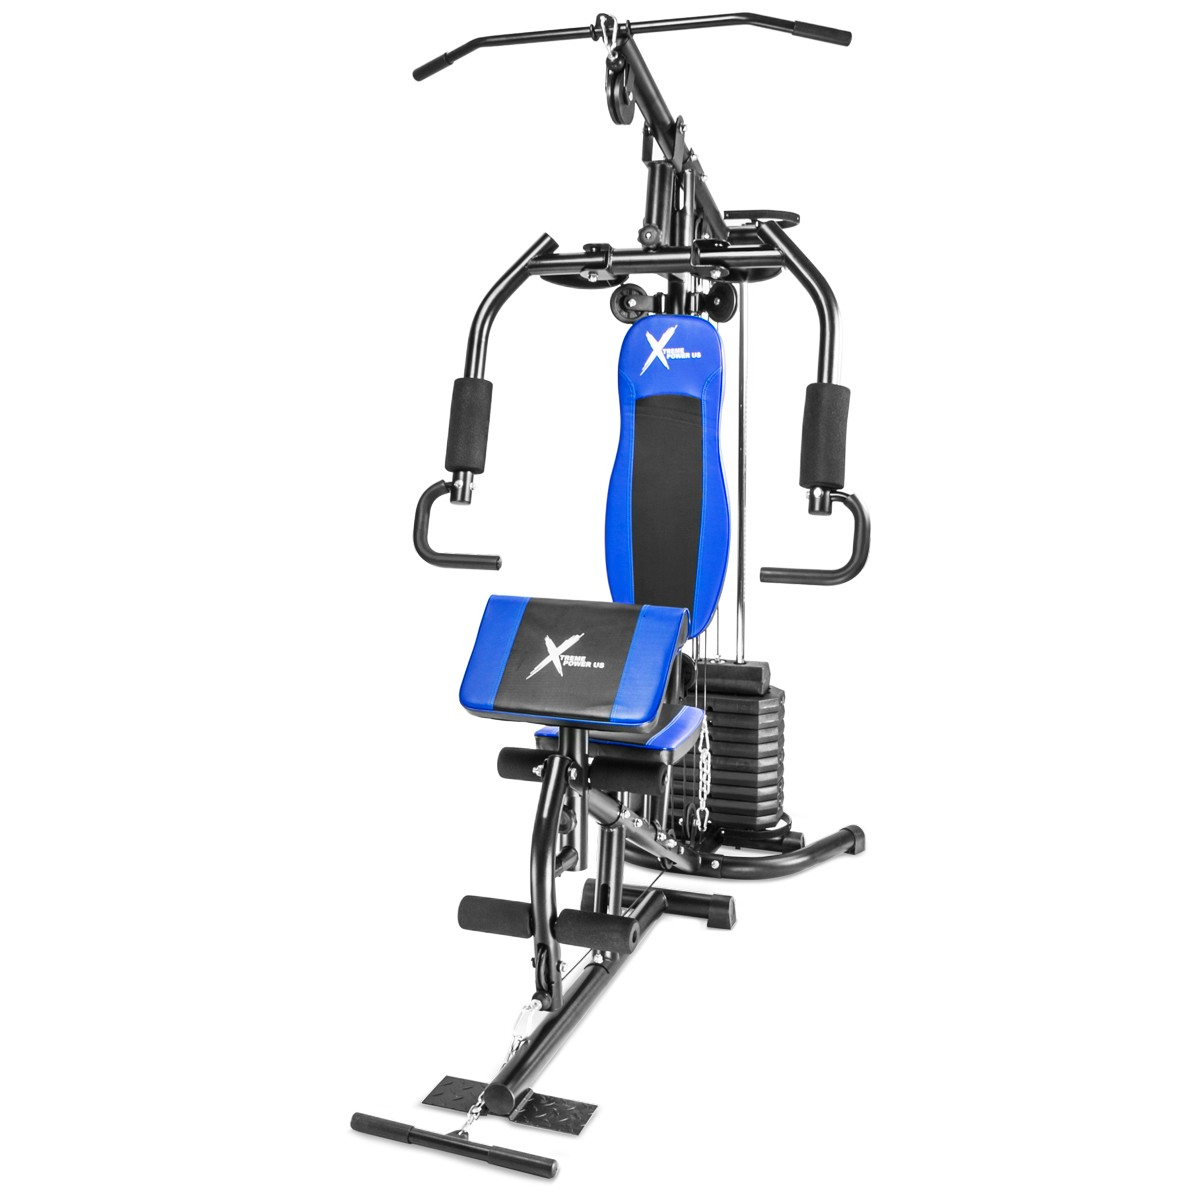 XtremepowerUS Deluxe Home Gym Fitness Exercise Workout Machine Weight Stack